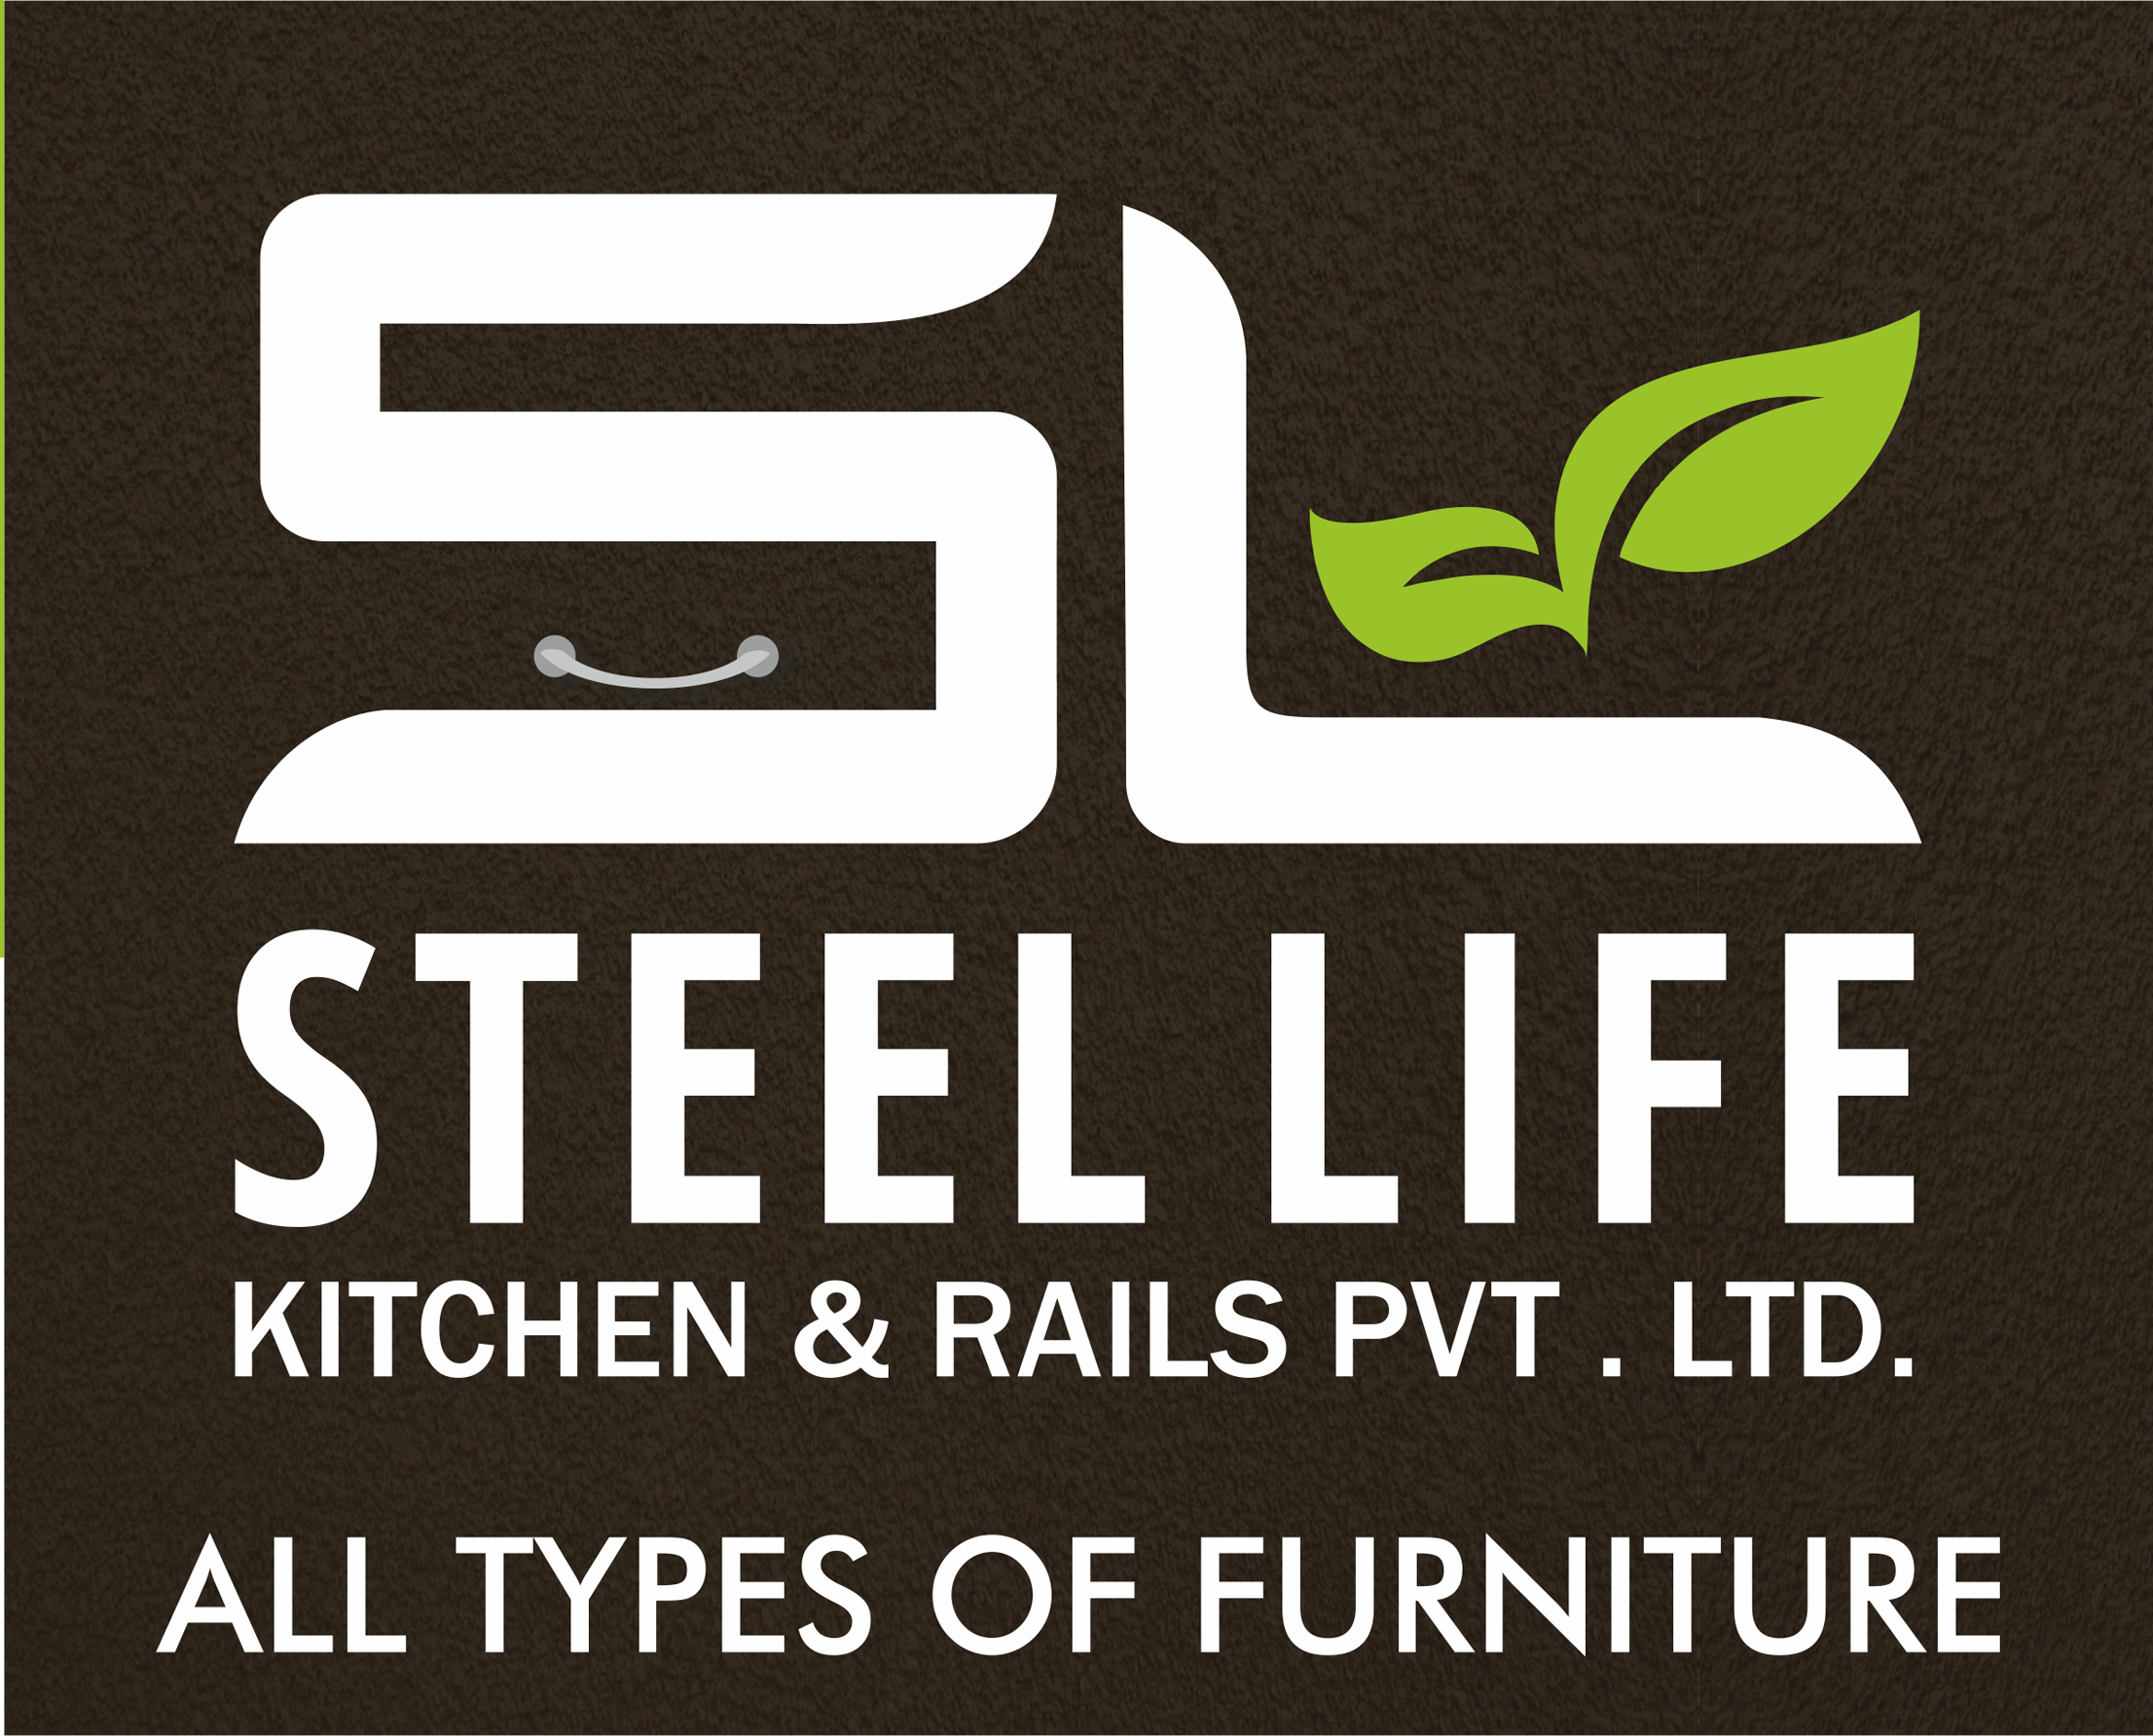 modular-office-furniture-in-pune-company-logo